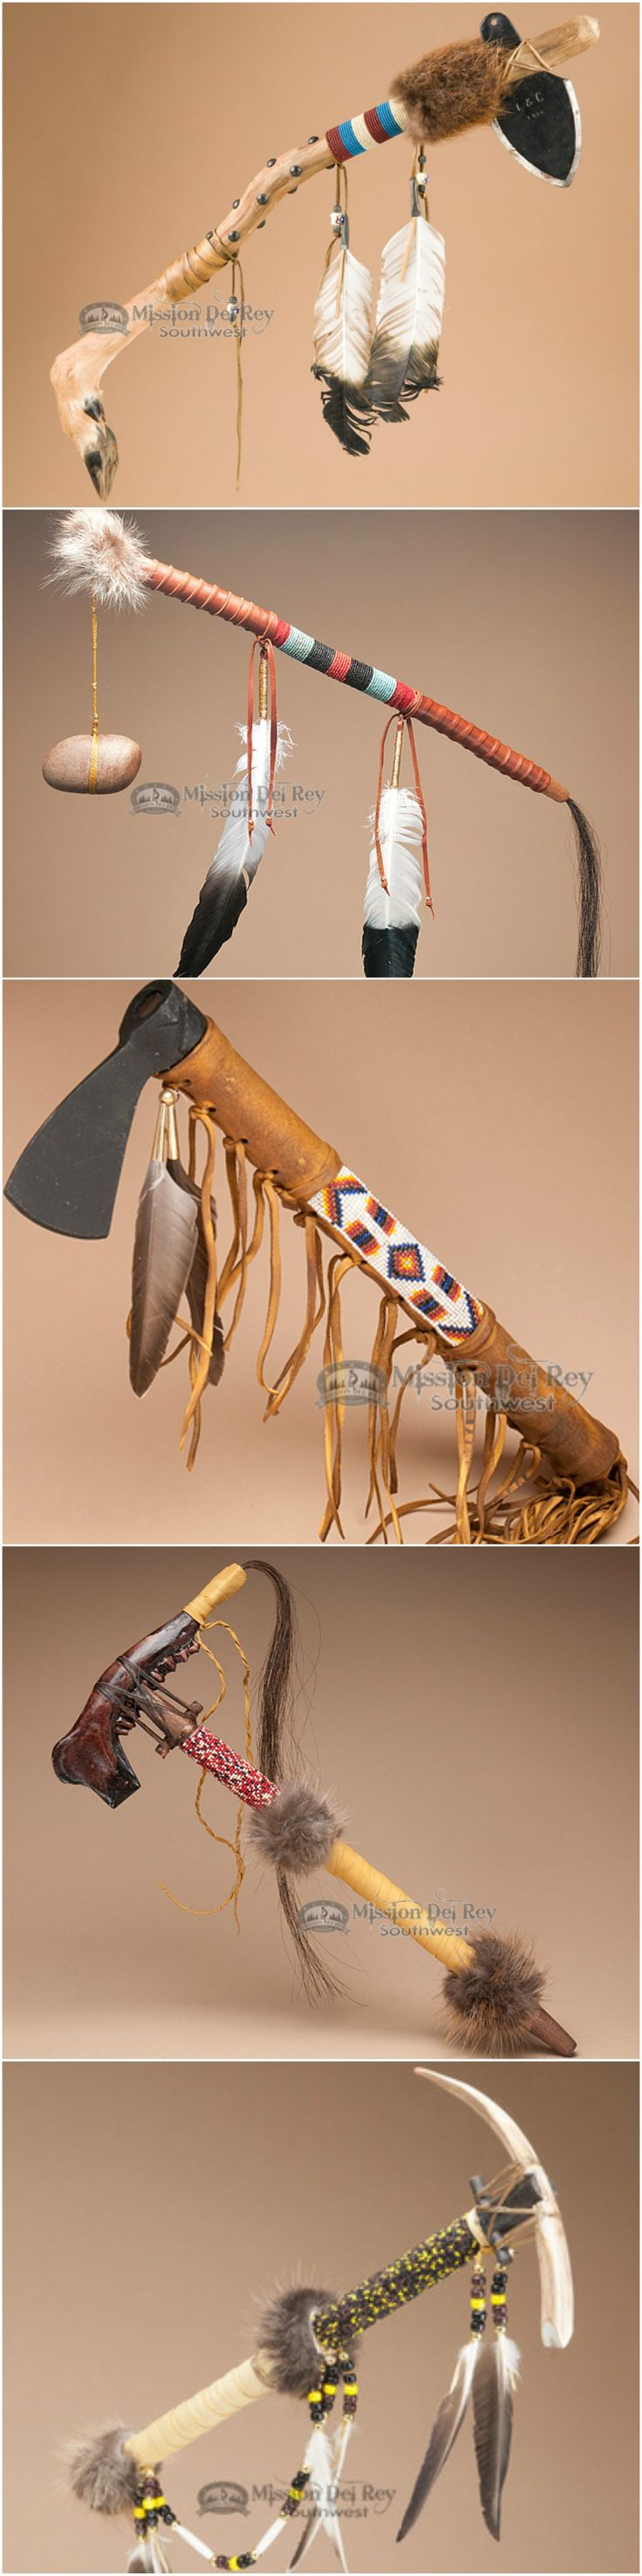 The American Indian tomahawk served many uses. Originally made of a shaped piece of stone attached to a wooden handle, the tomahawk was a prized possession. Today, the tradition of the Indian tomahawk is still carried on for peaceful purposes and play a central part in many ceremonies. See more Native American tomahawks at http://www.missiondelrey.com/native-american-tomahawks-war-clubs/